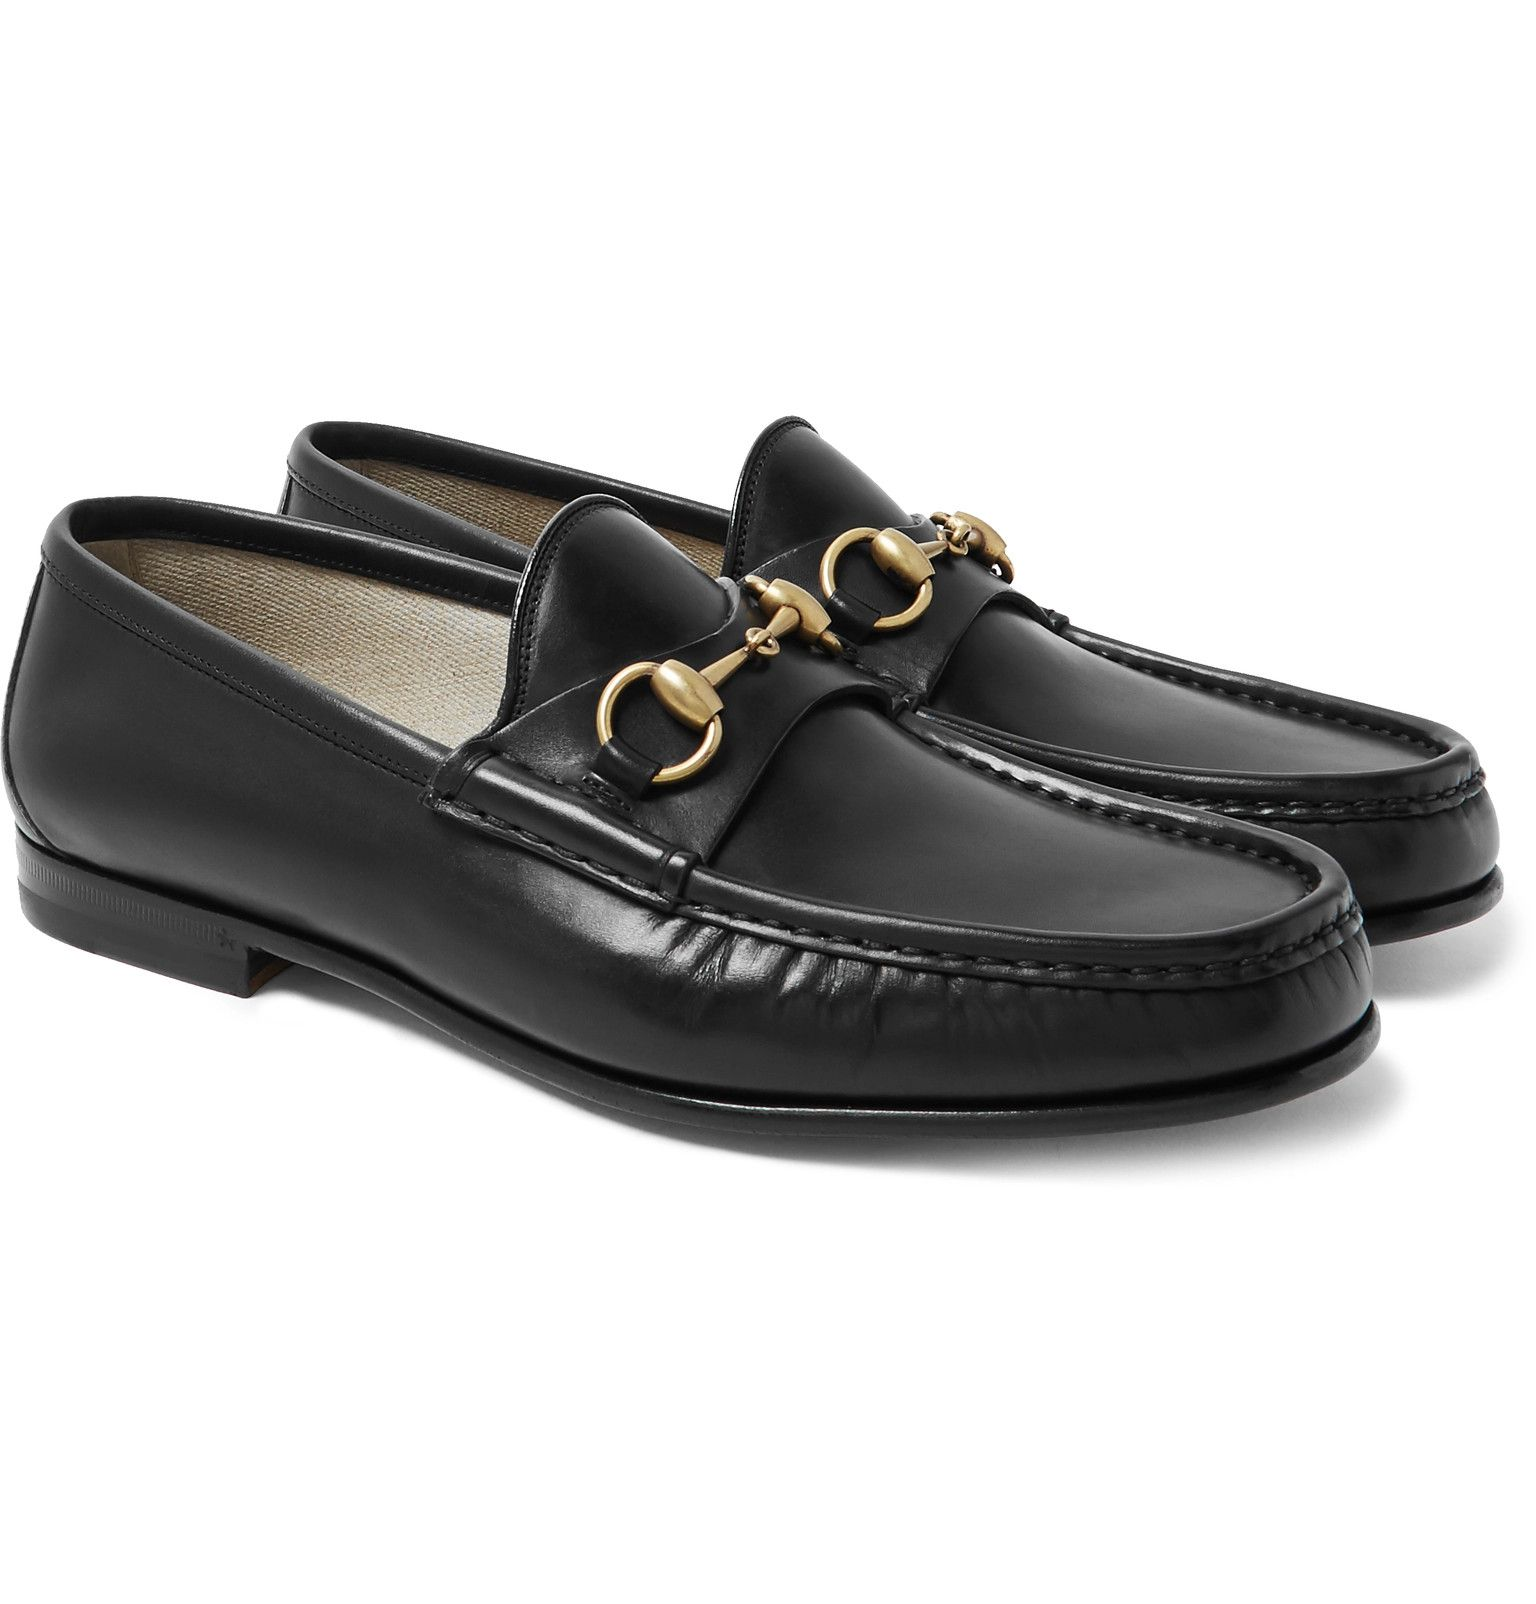 Gucci - Roos Horsebit Leather Loafers